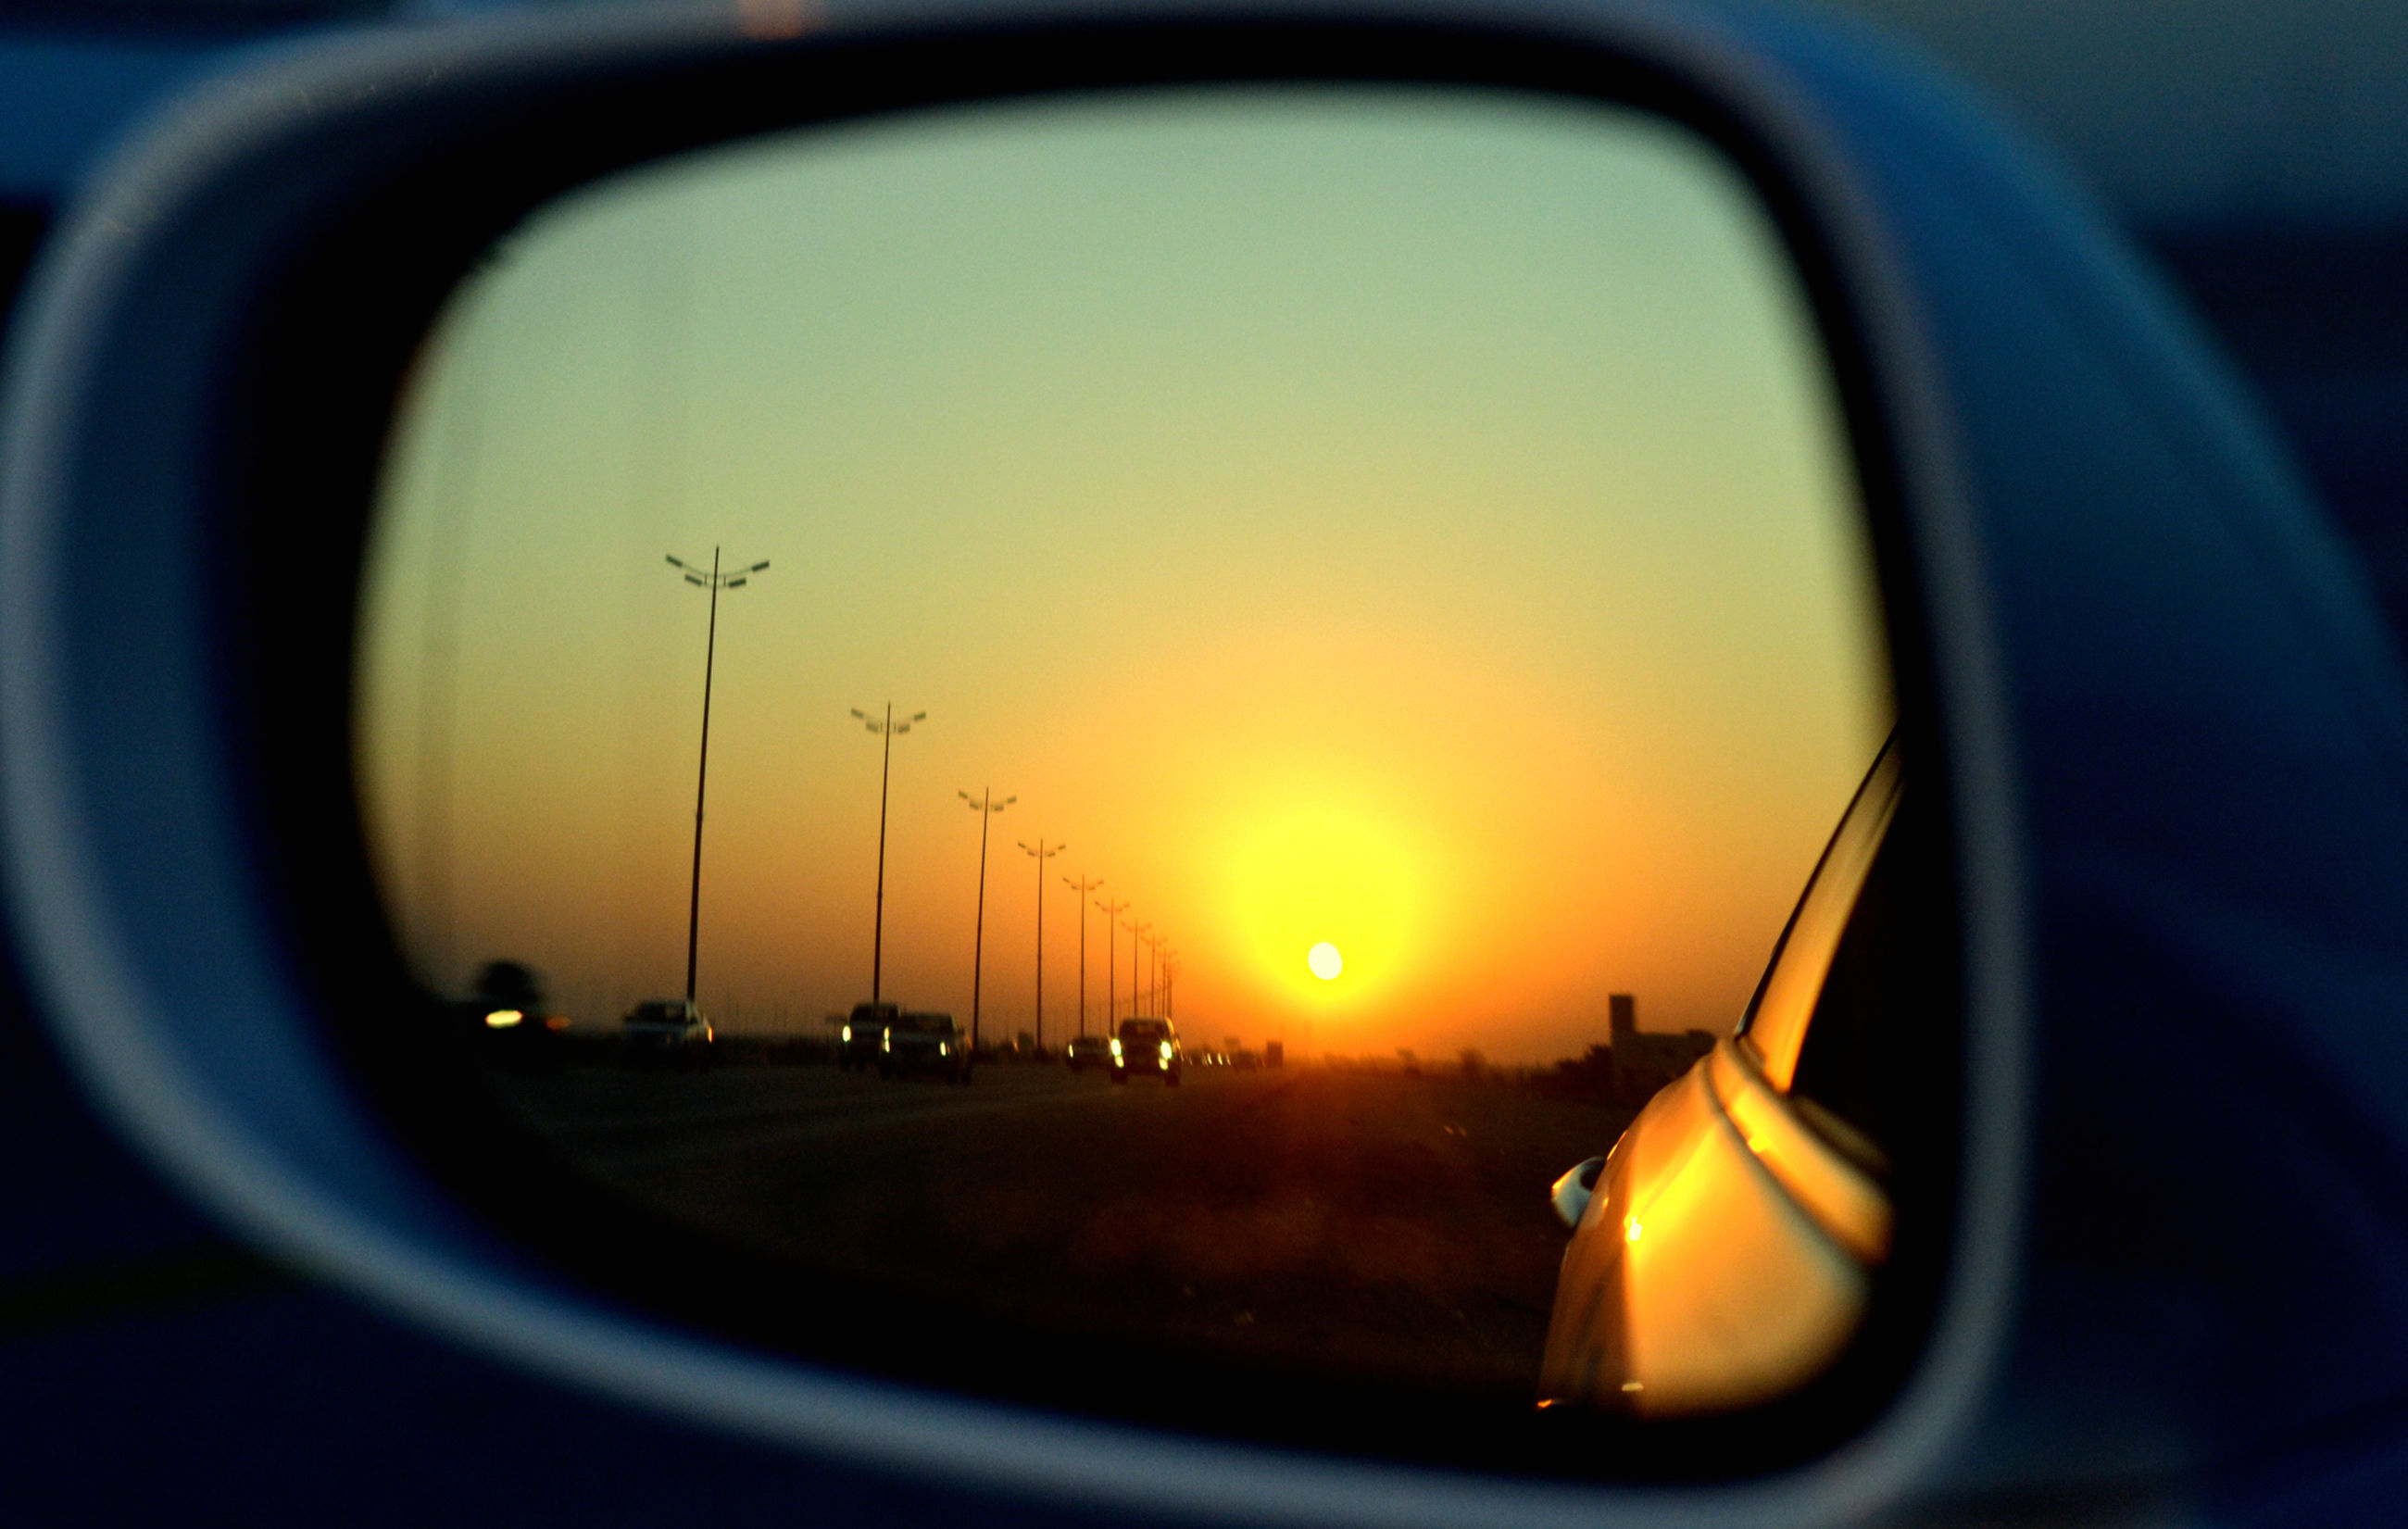 transportation, mode of transport, sunset, car, land vehicle, vehicle interior, sun, orange color, airplane, travel, air vehicle, glass - material, transparent, on the move, sky, side-view mirror, windshield, car interior, road, part of